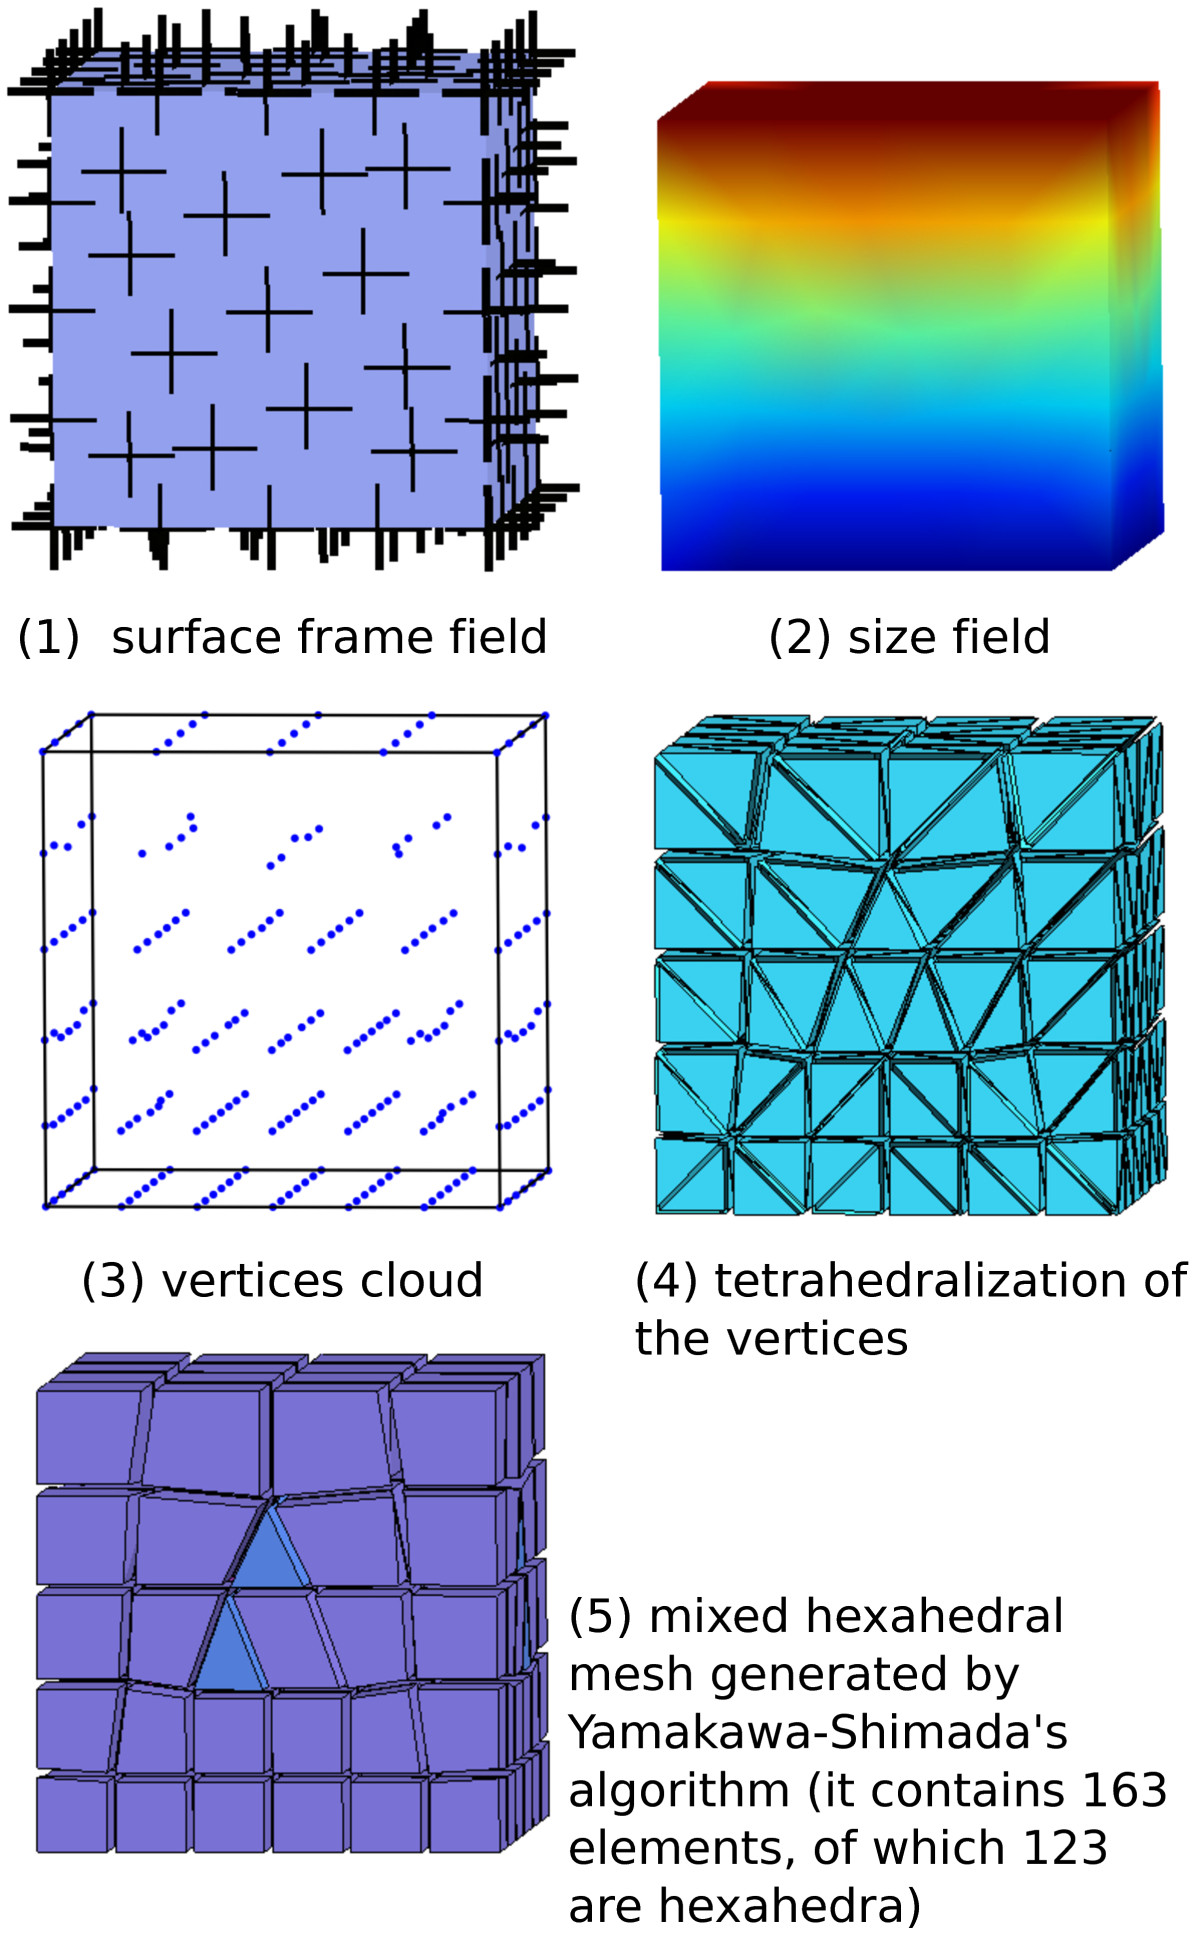 https://static-content.springer.com/image/art%3A10.1186%2F2213-7467-1-8/MediaObjects/40323_2013_Article_7_Fig2_HTML.jpg